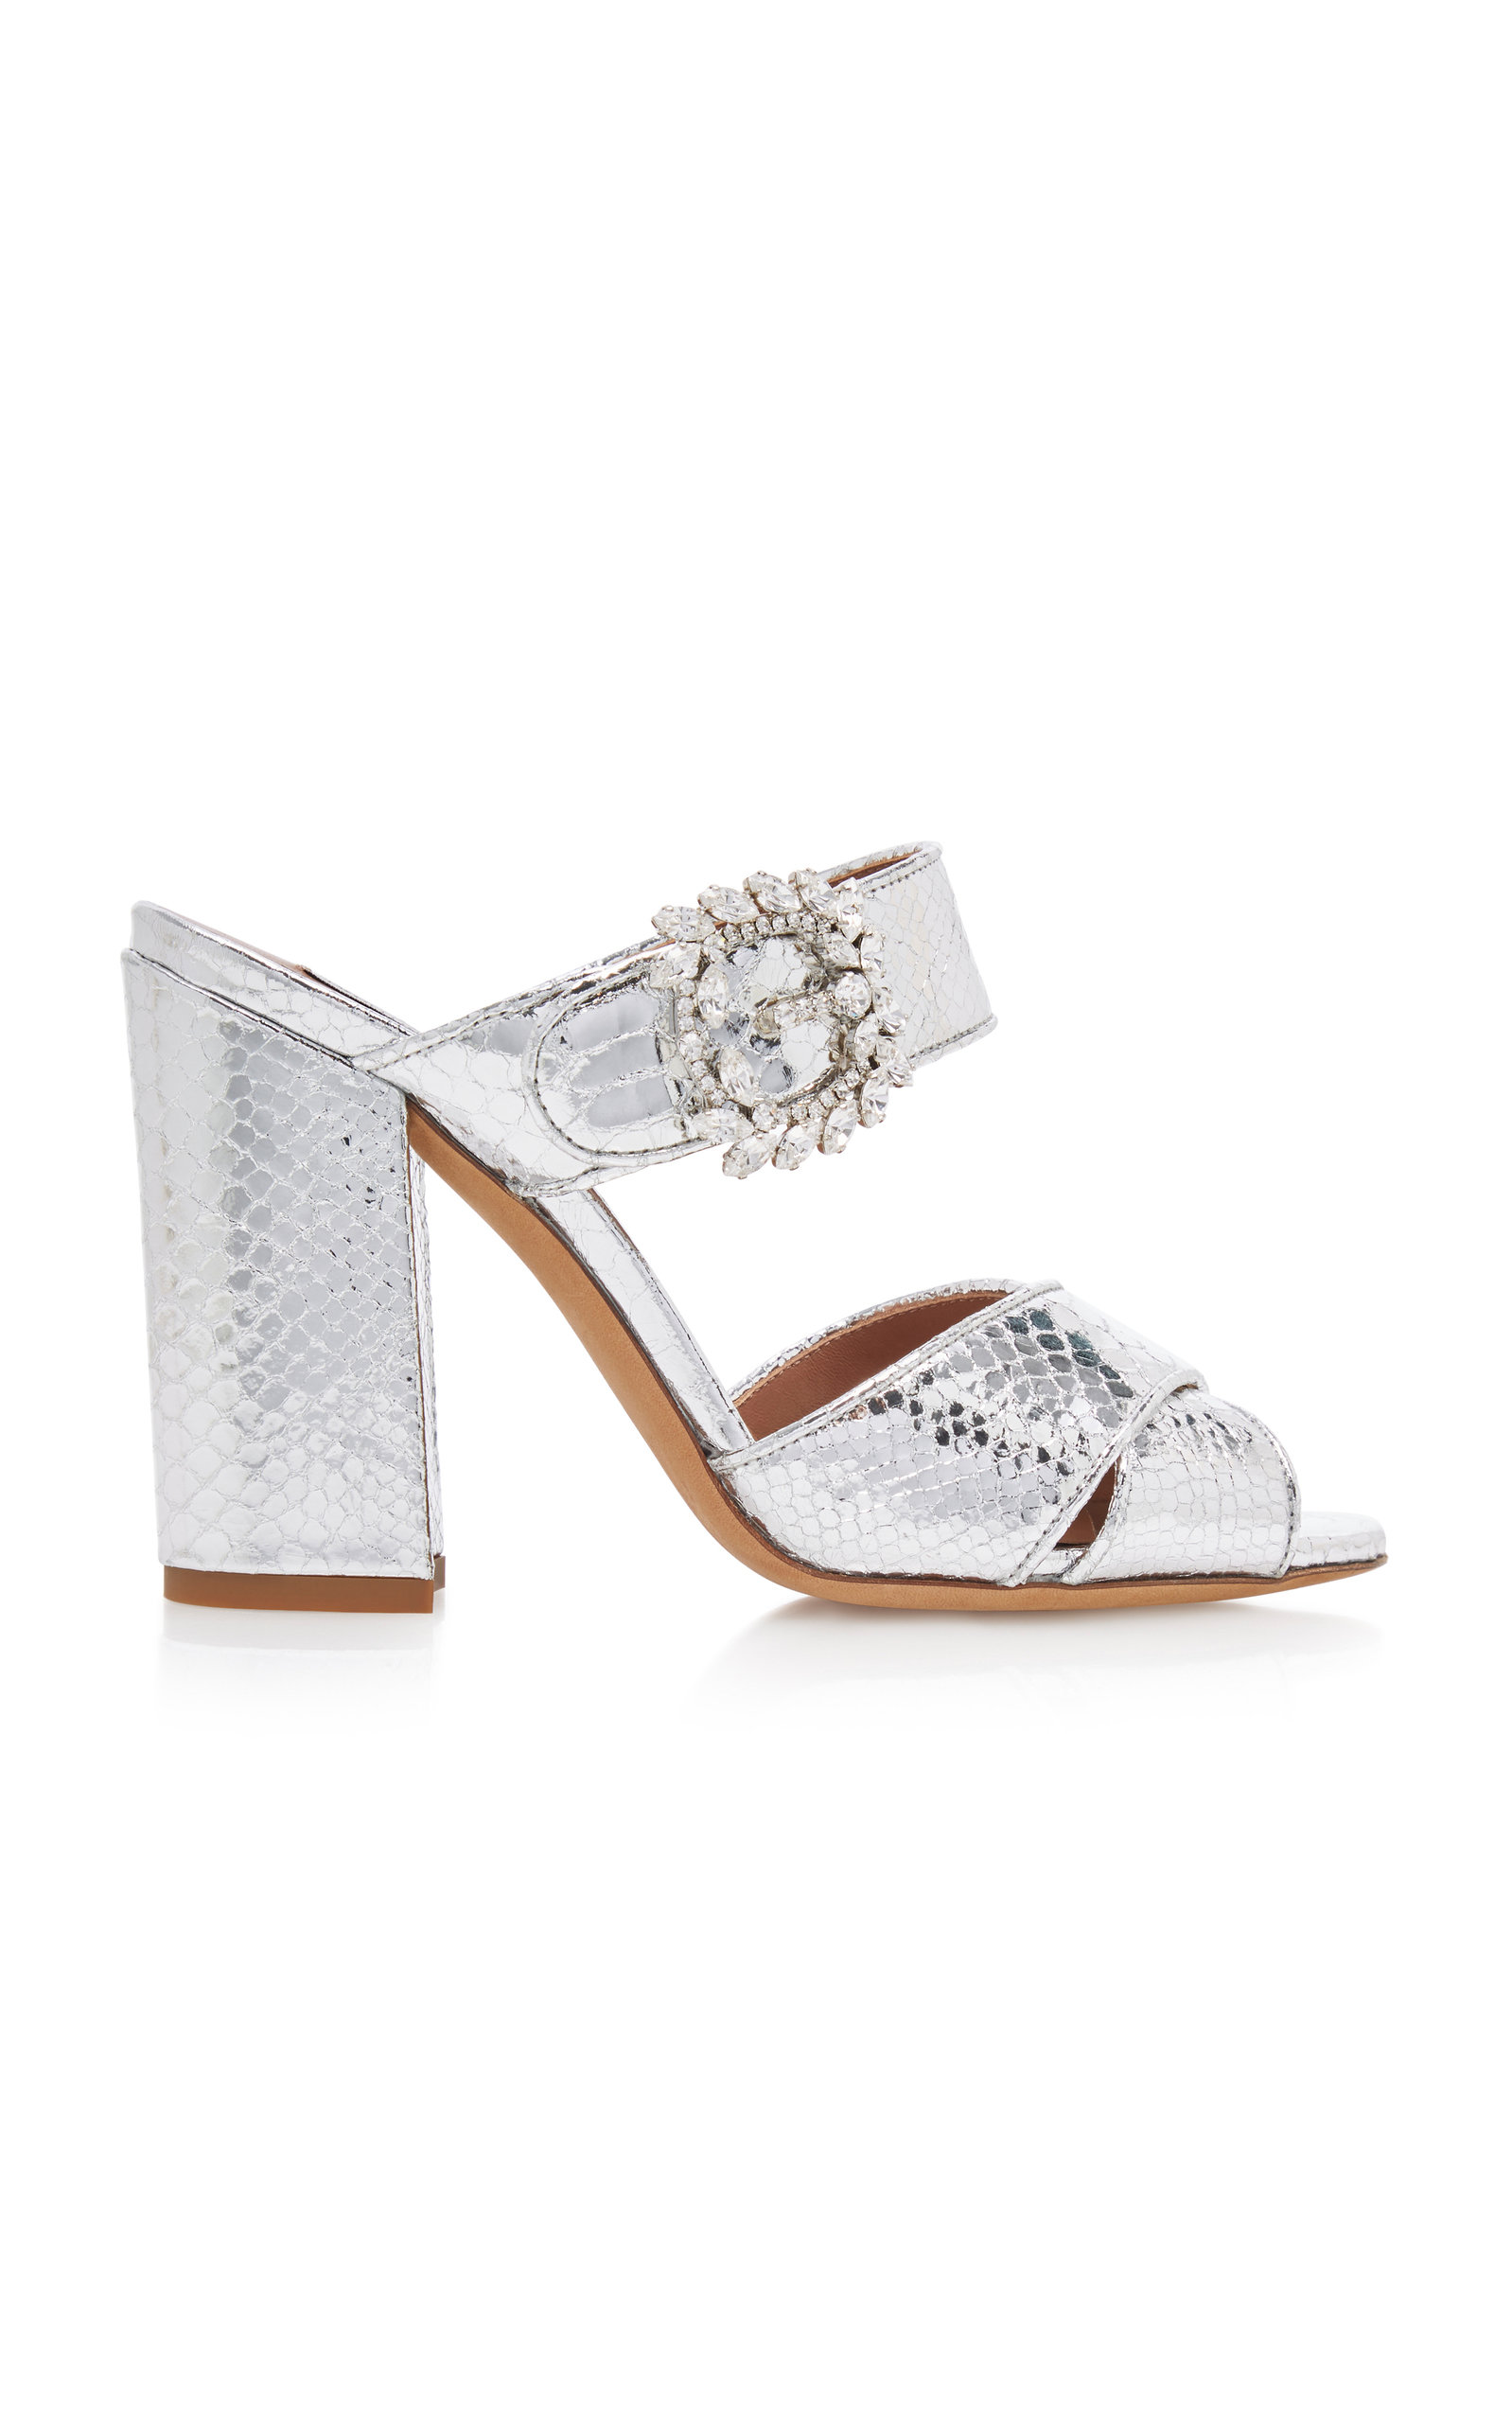 Tabitha Simmons REYNER CRYSTAL-EMBELLISHED METALLIC LEATHER SANDALS